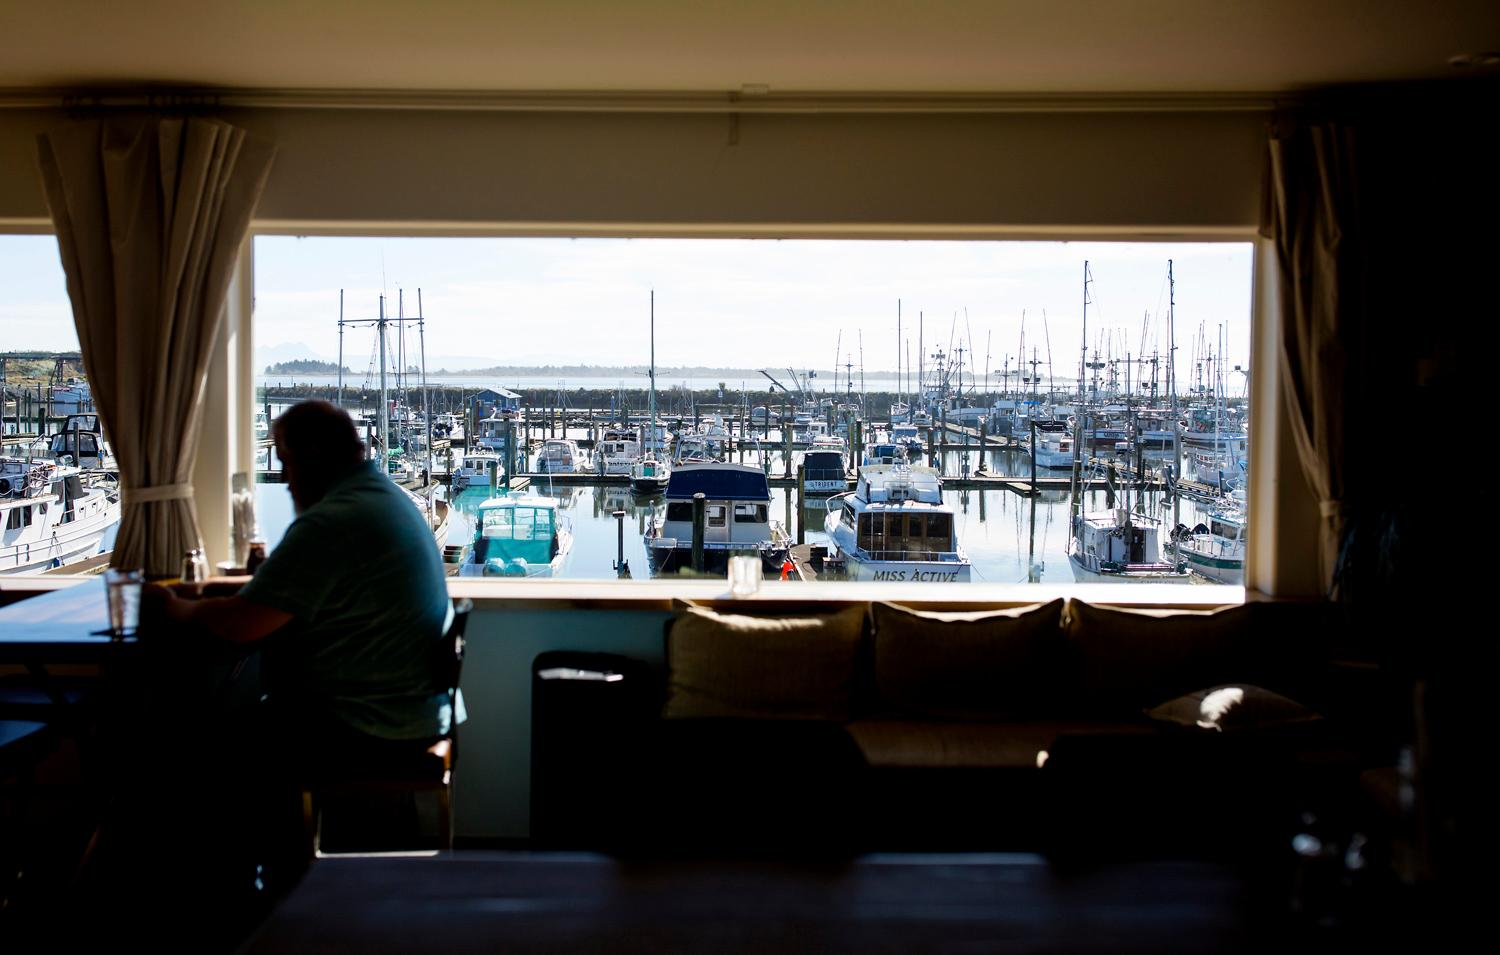 The view from the Salt Hotel and Pub looks over the fishing boats at the Port of Ilwaco. (Sy Bean / Seattle Refined)